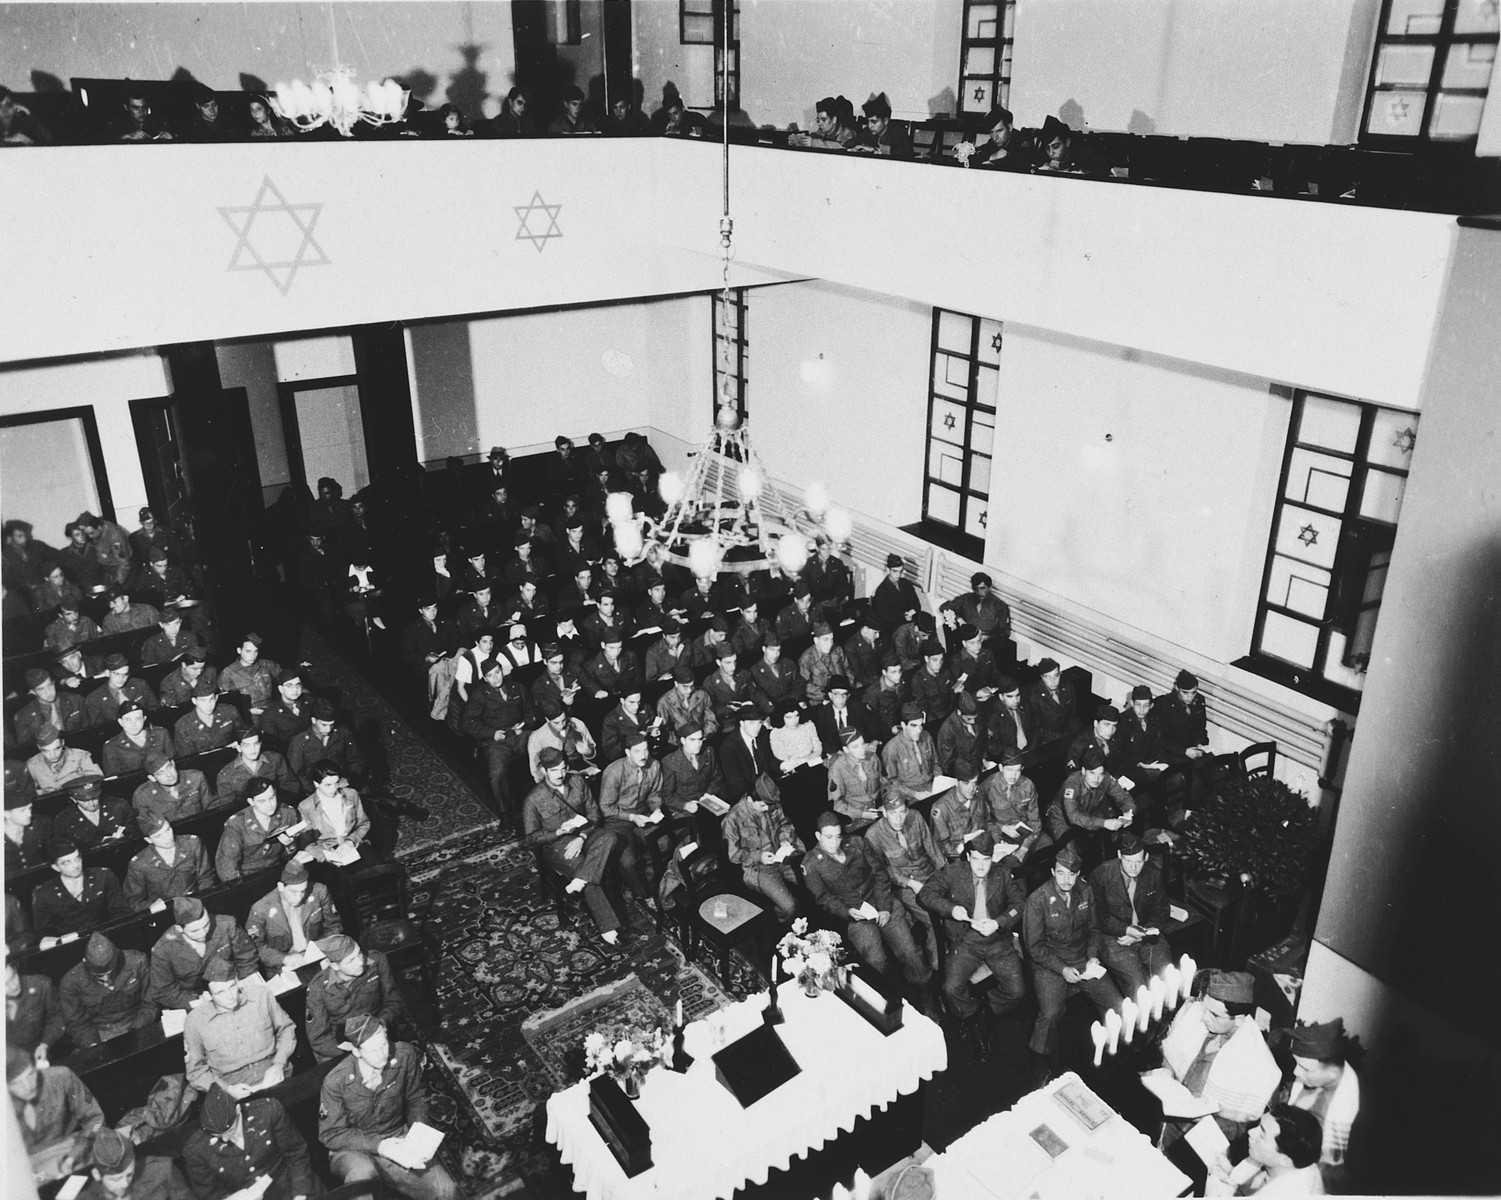 Jewish servicemen attend a religious service in the synagogue in Bad Nauheim, Germany.  Gisela Eckstein was among the survivors in attendance.